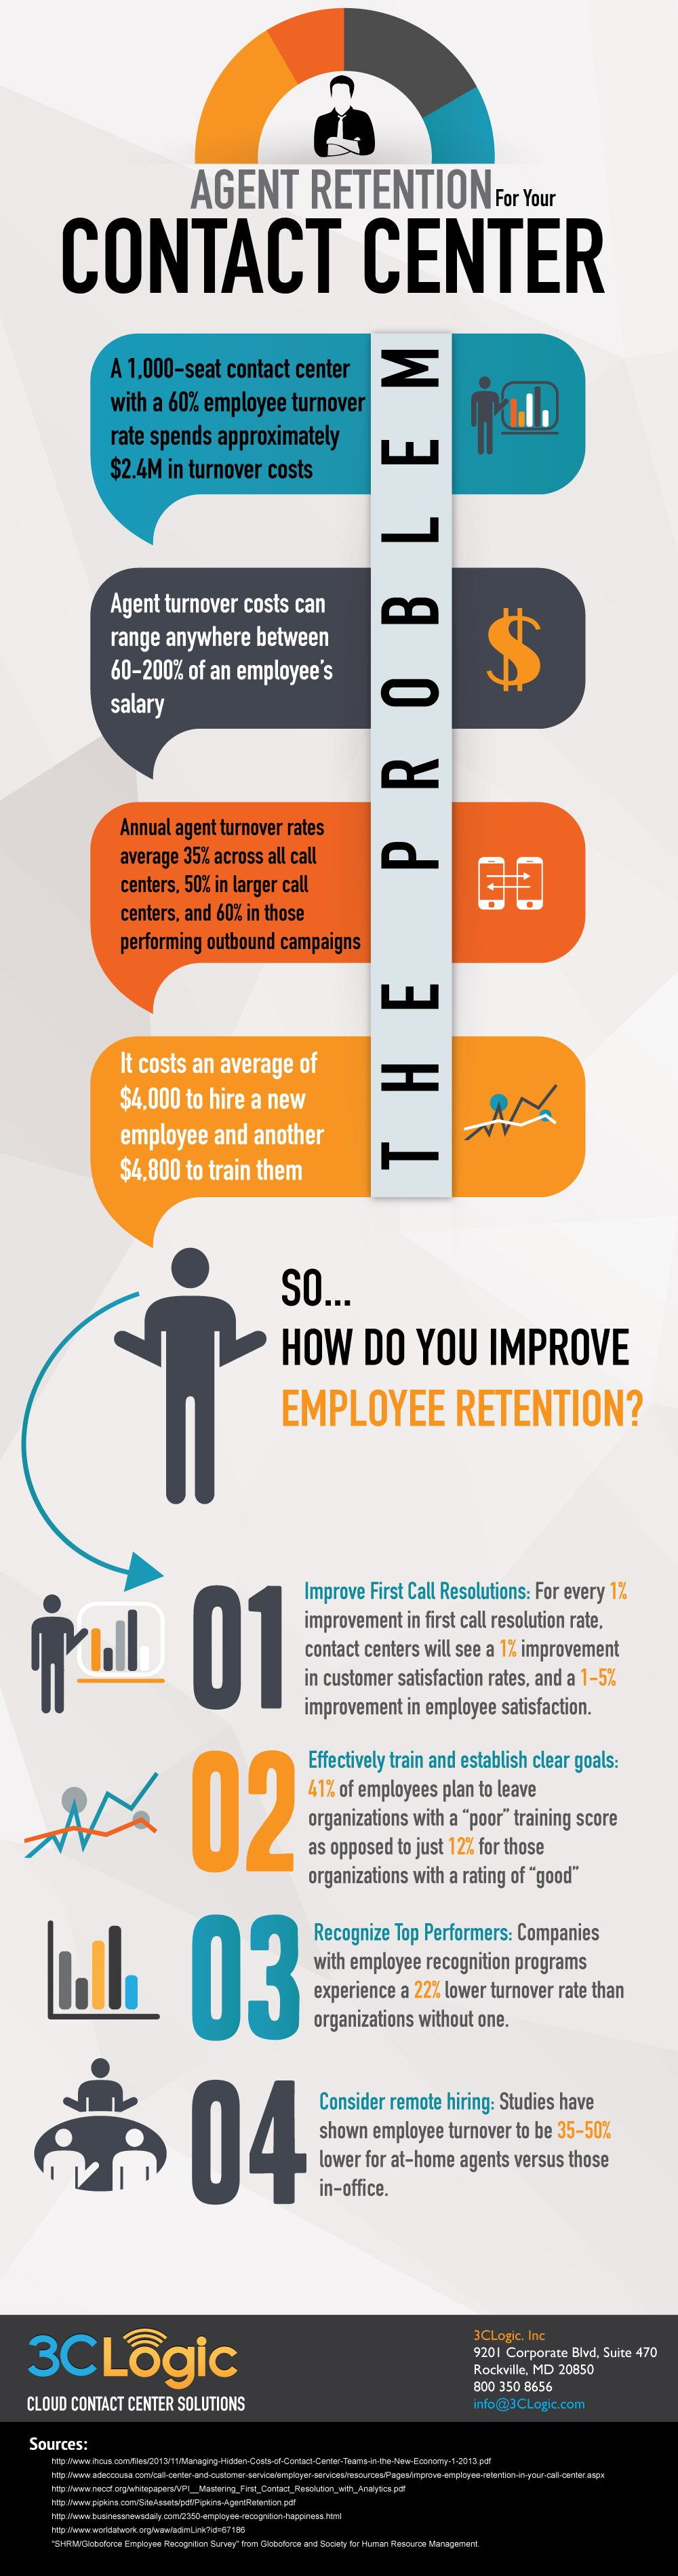 3CLogic-Infographic-Agent-Retention-For-Your-Contact-Center